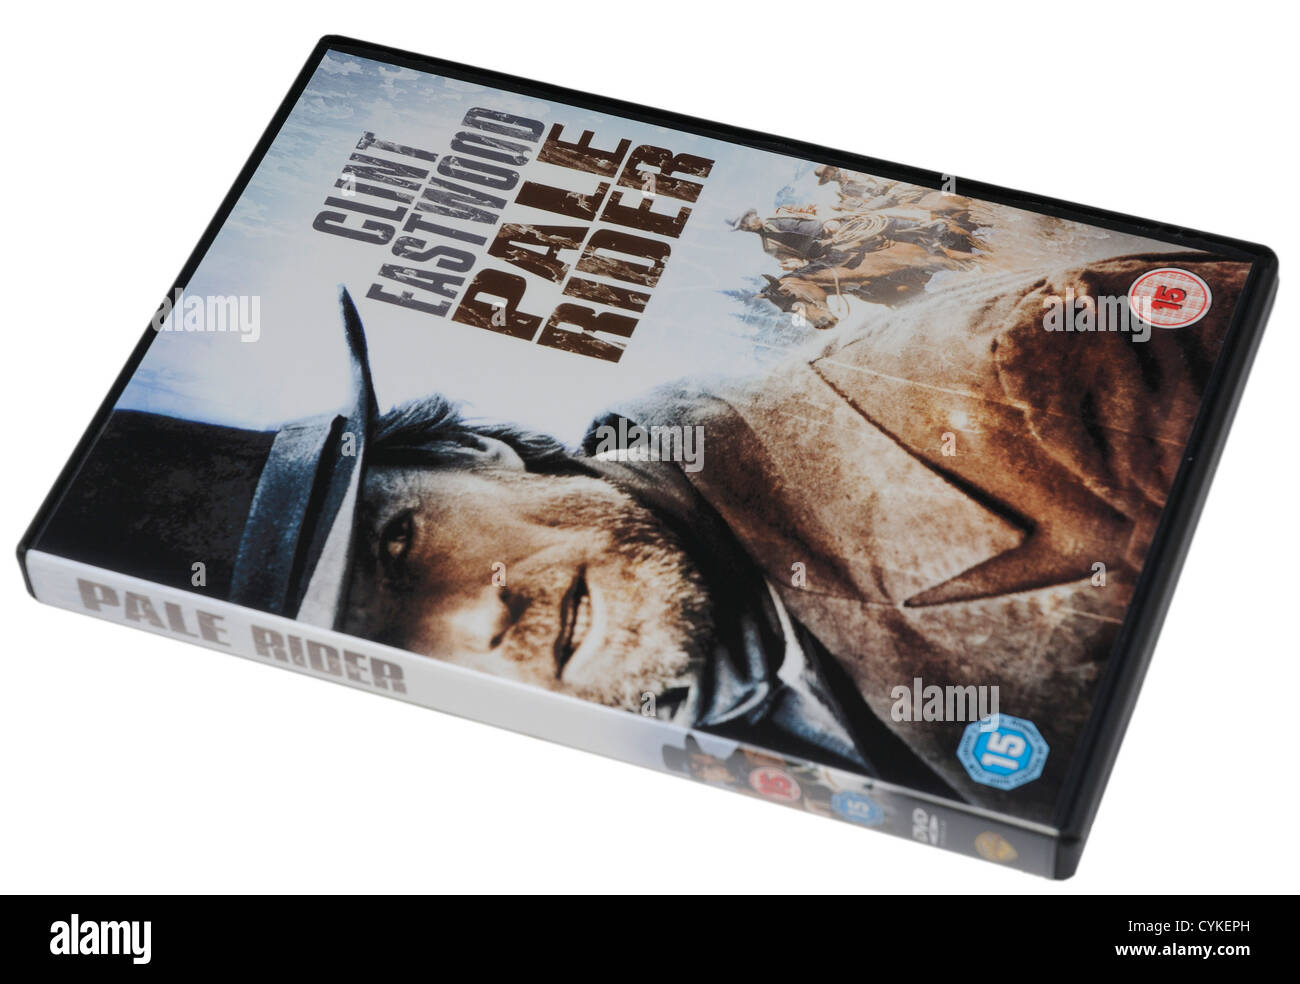 Pale Rider DVD with Clint Eastwood - Stock Image